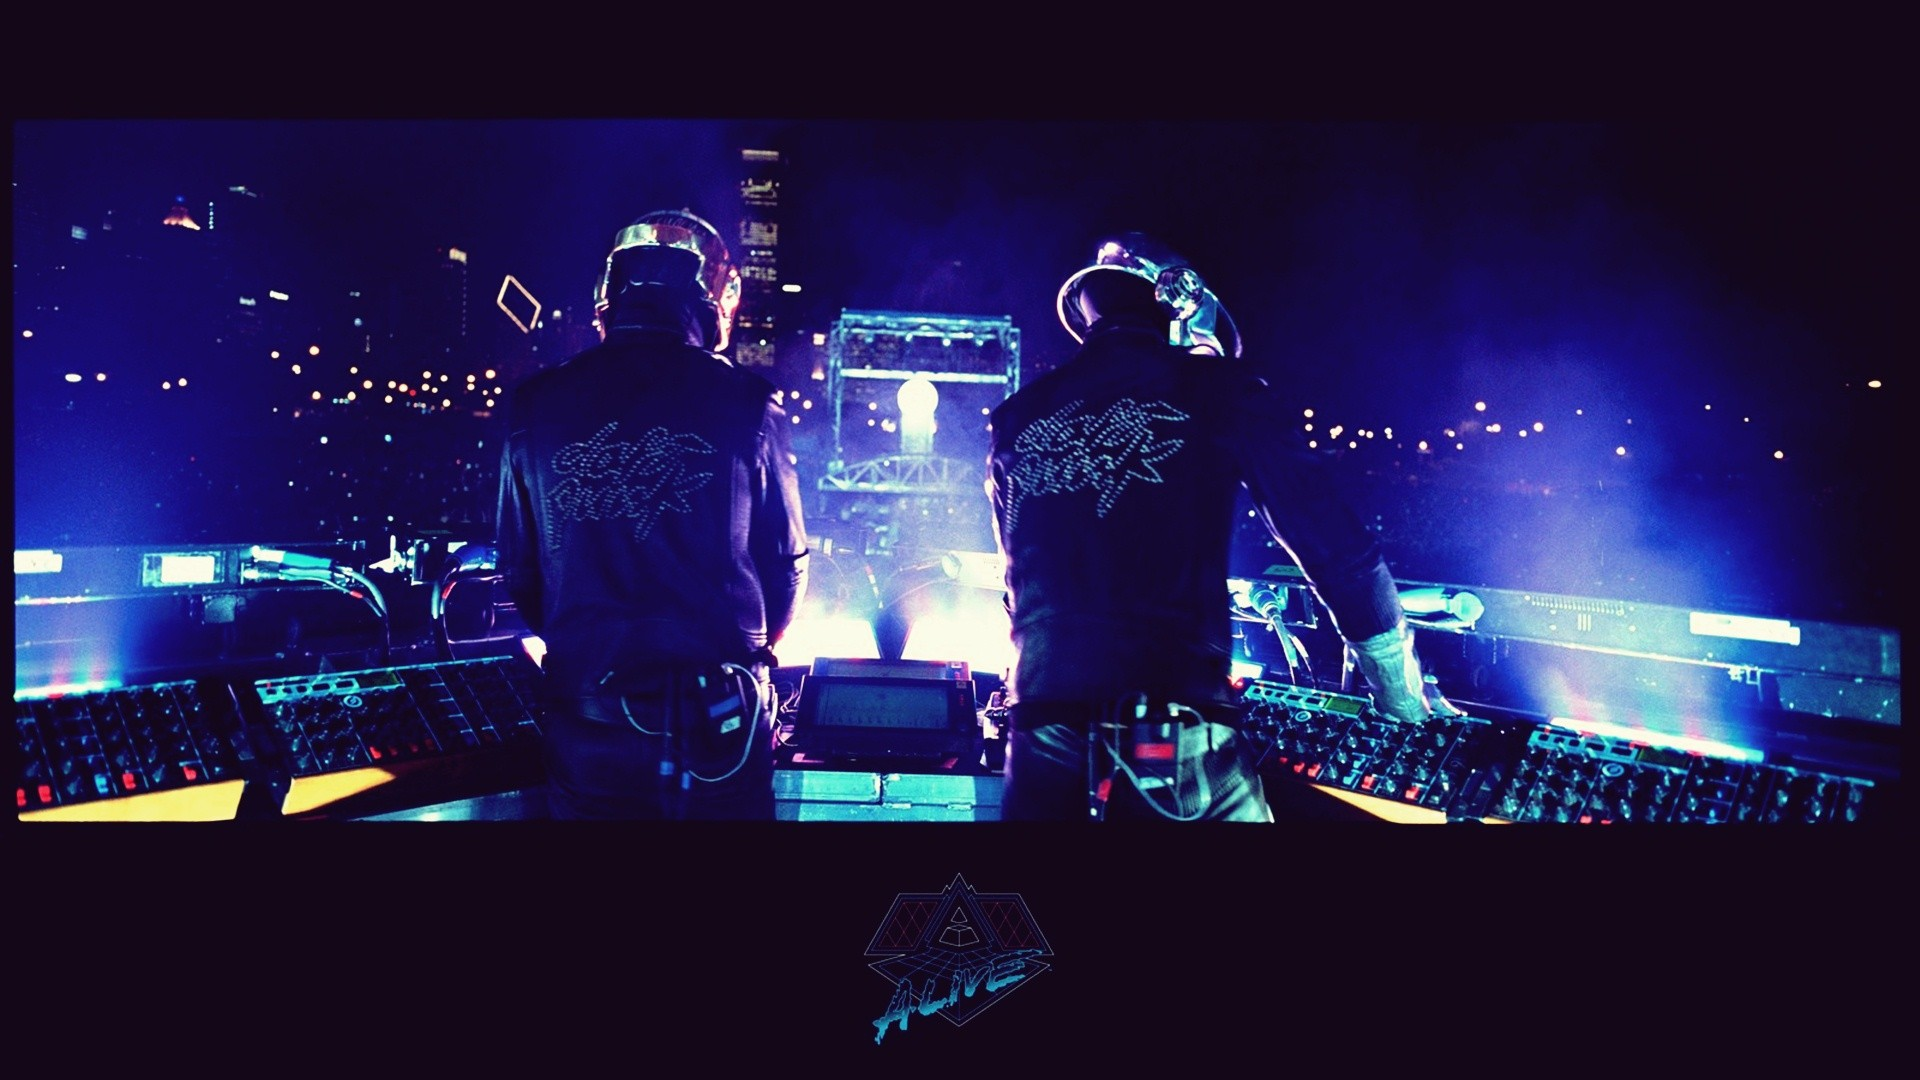 Music Daft Punk Concert Live HD Wallpaper